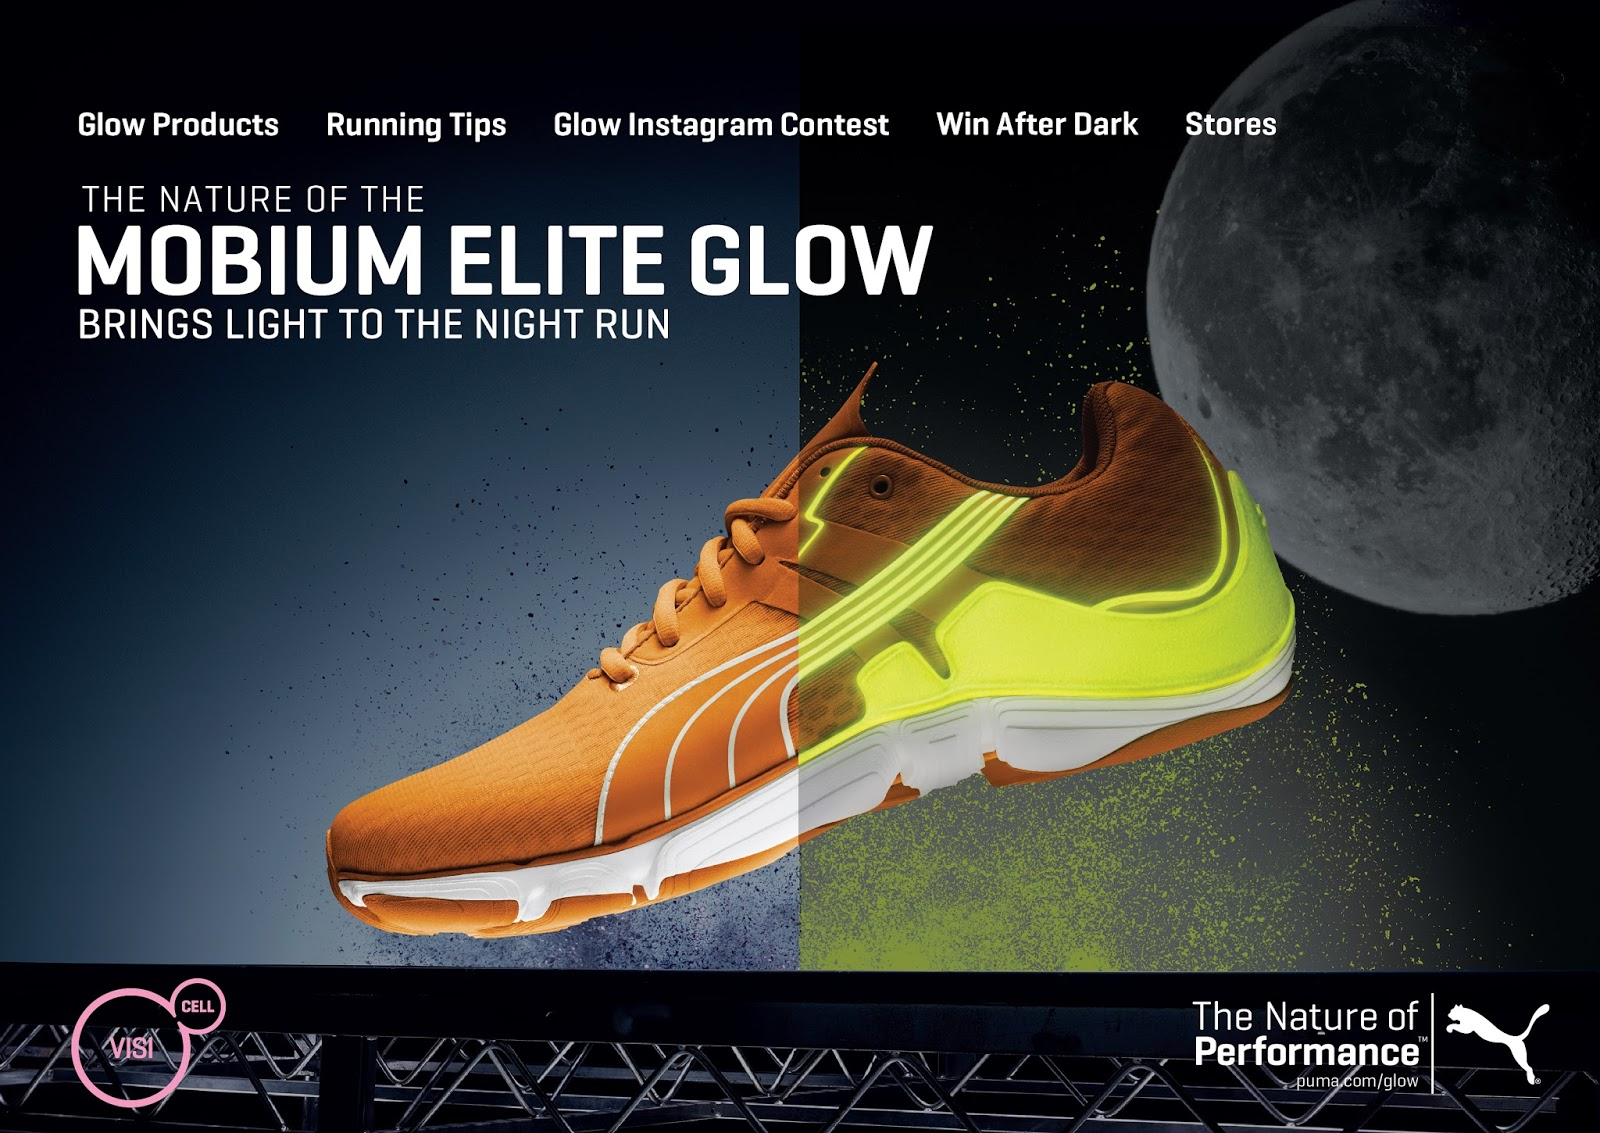 6a449ce1870 Make a mark as you pace through the town with PUMA s latest Glow edition to  their family of running shoes. Take part in our running revolution and show  us ...